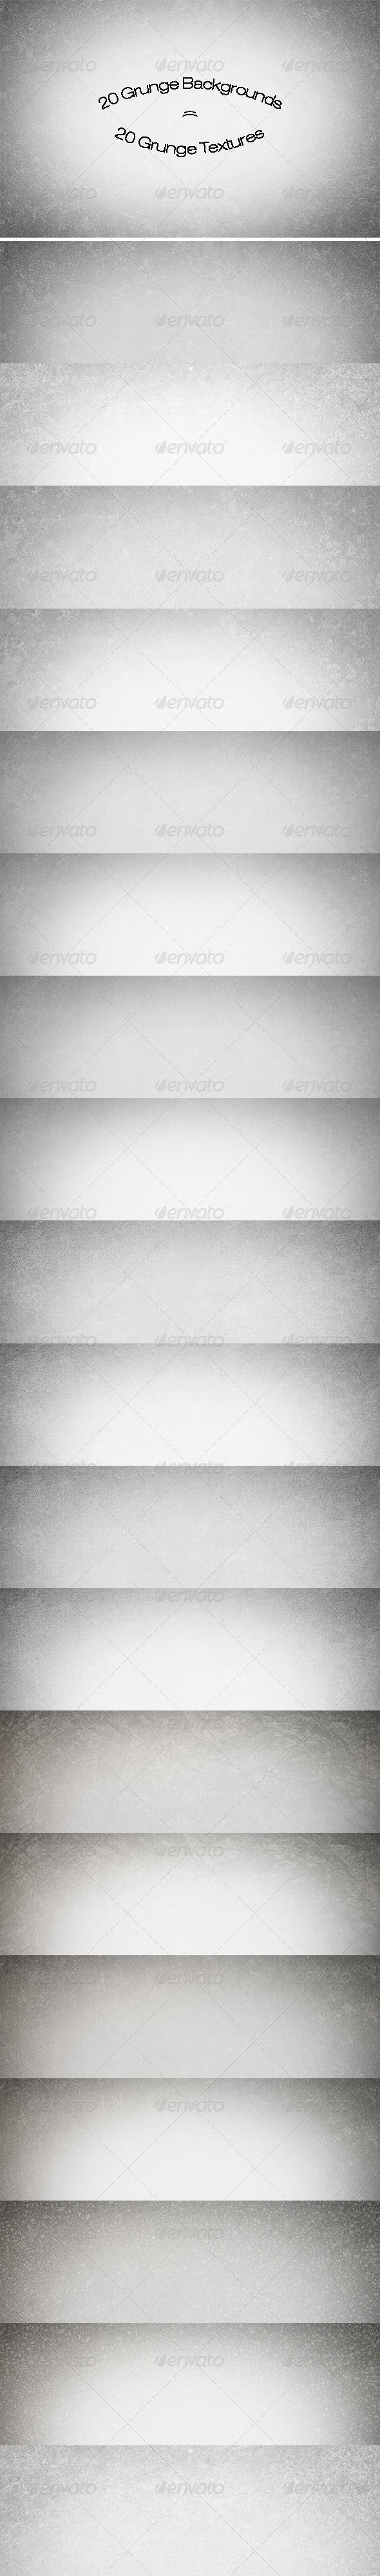 20 Grunge Backgrounds/Textures - Backgrounds Graphics